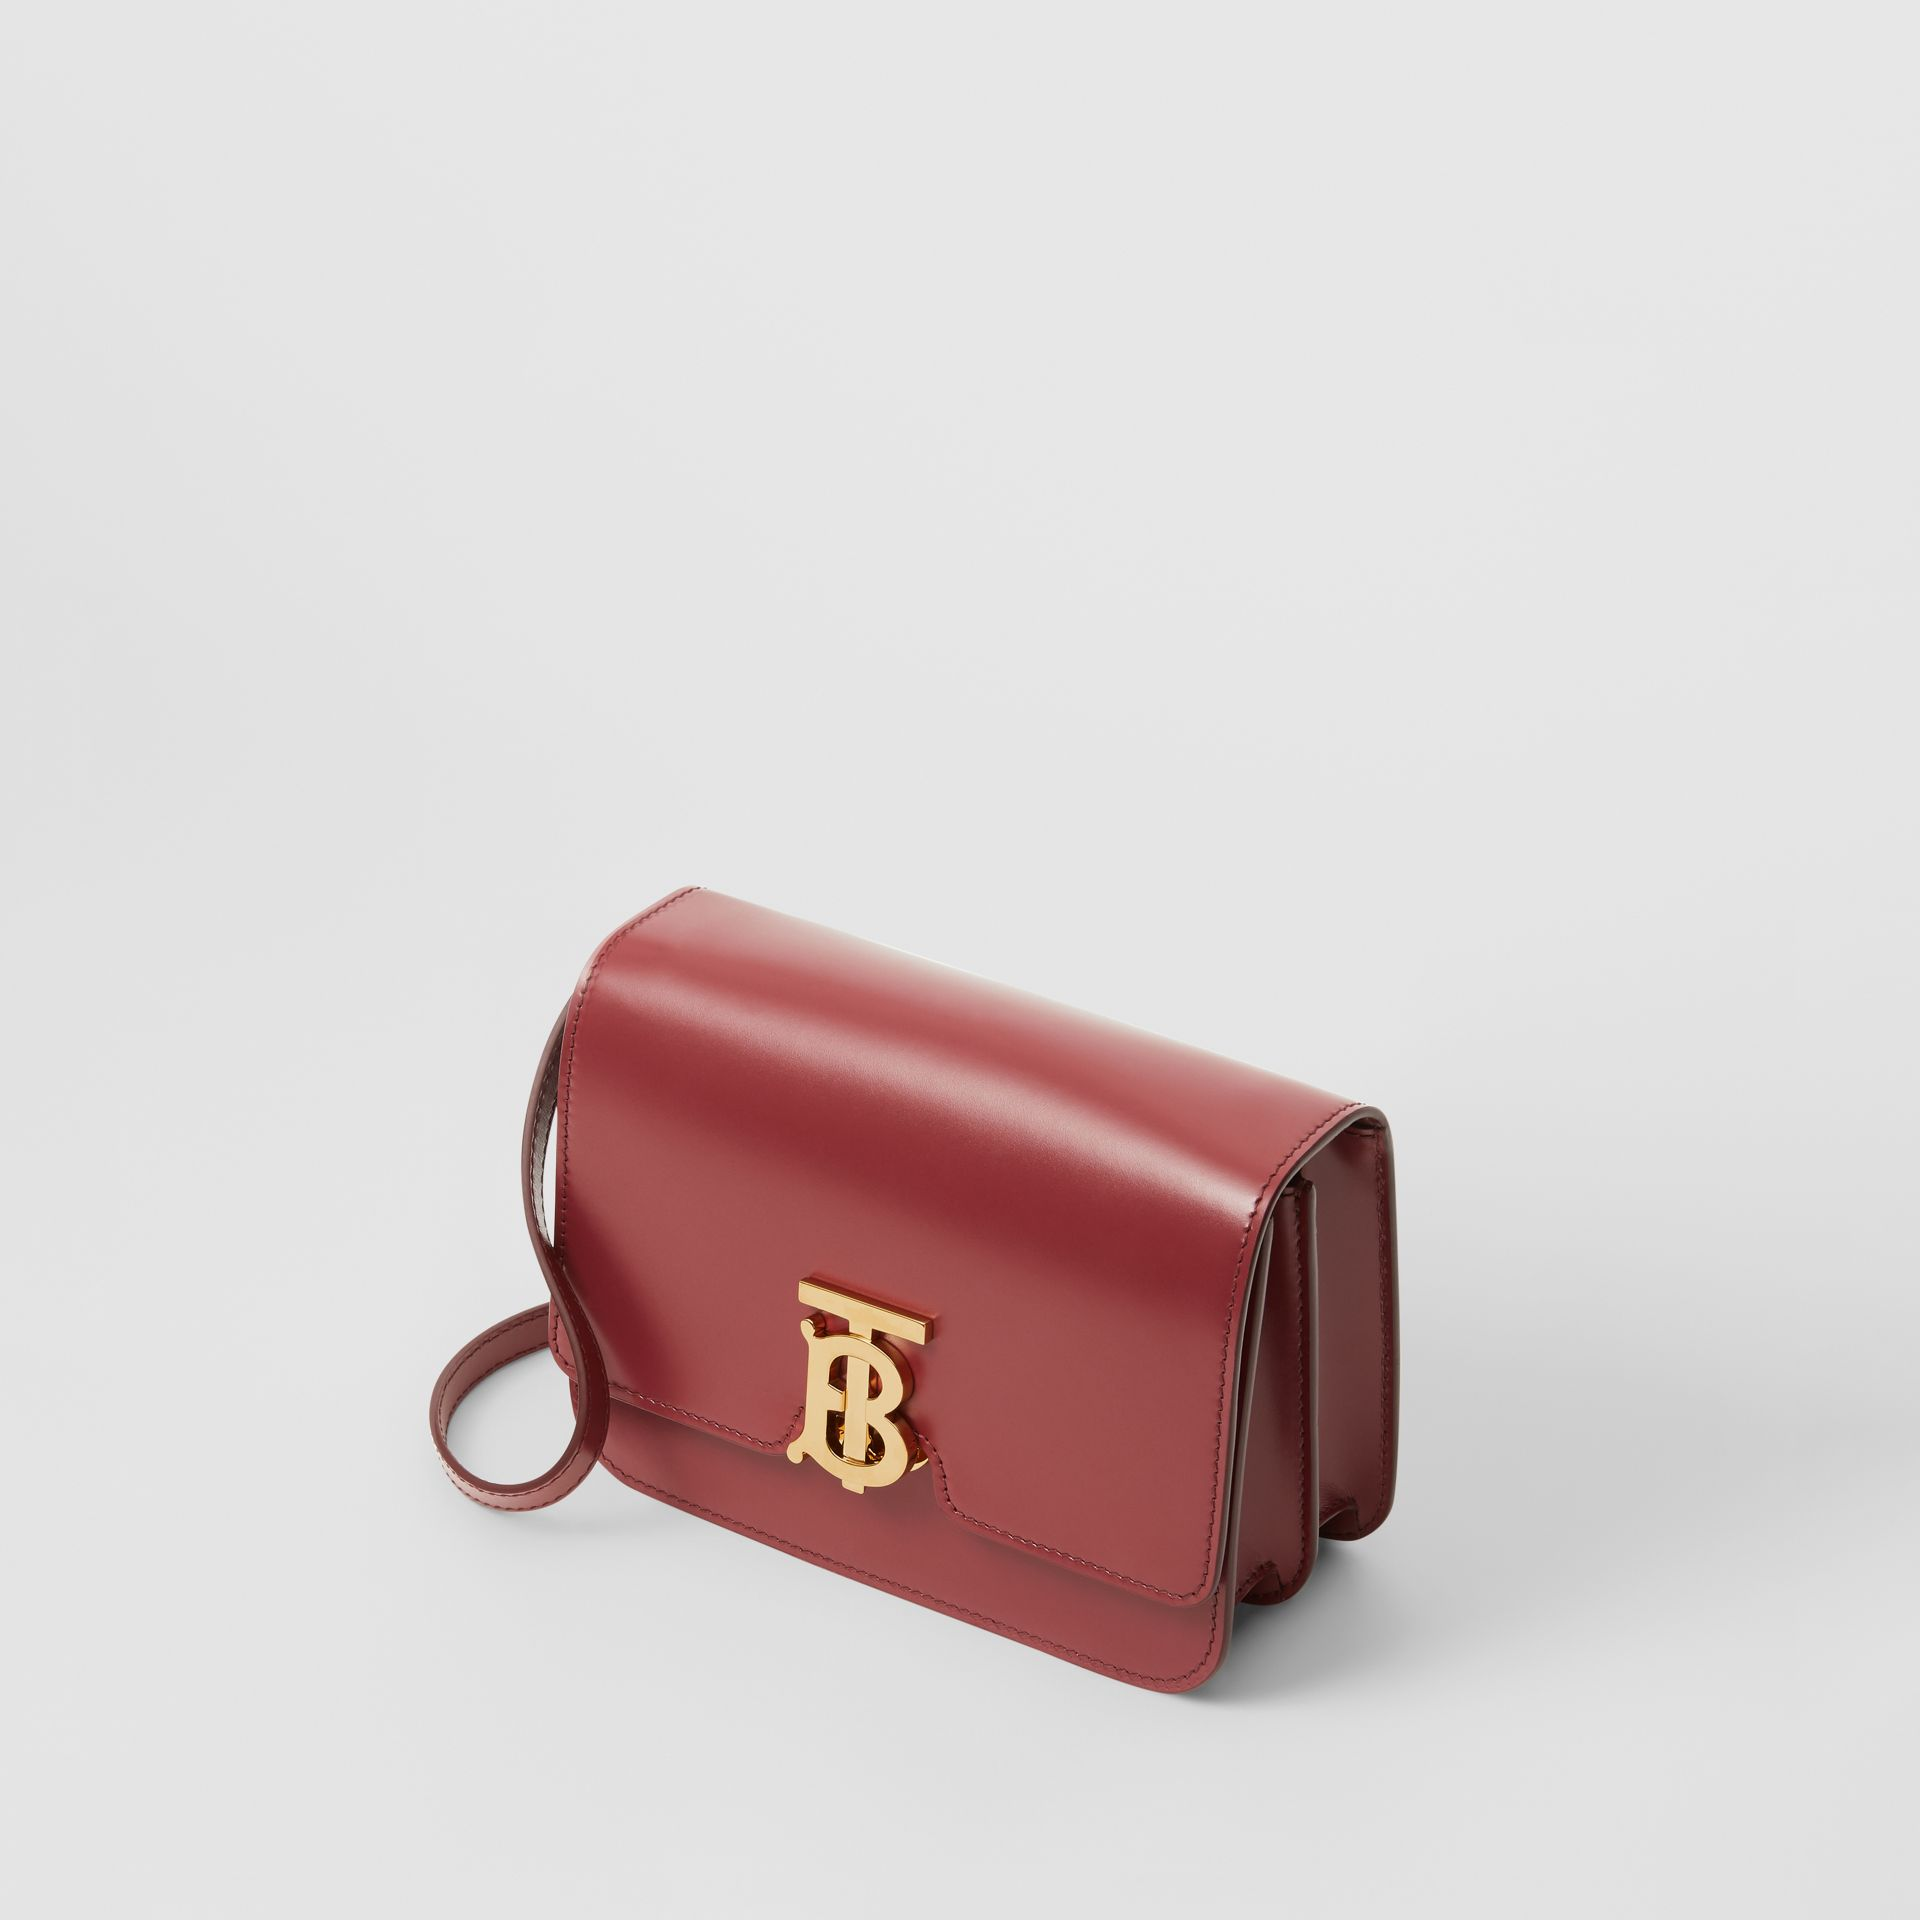 Small Leather TB Bag in Crimson - Women | Burberry - gallery image 2